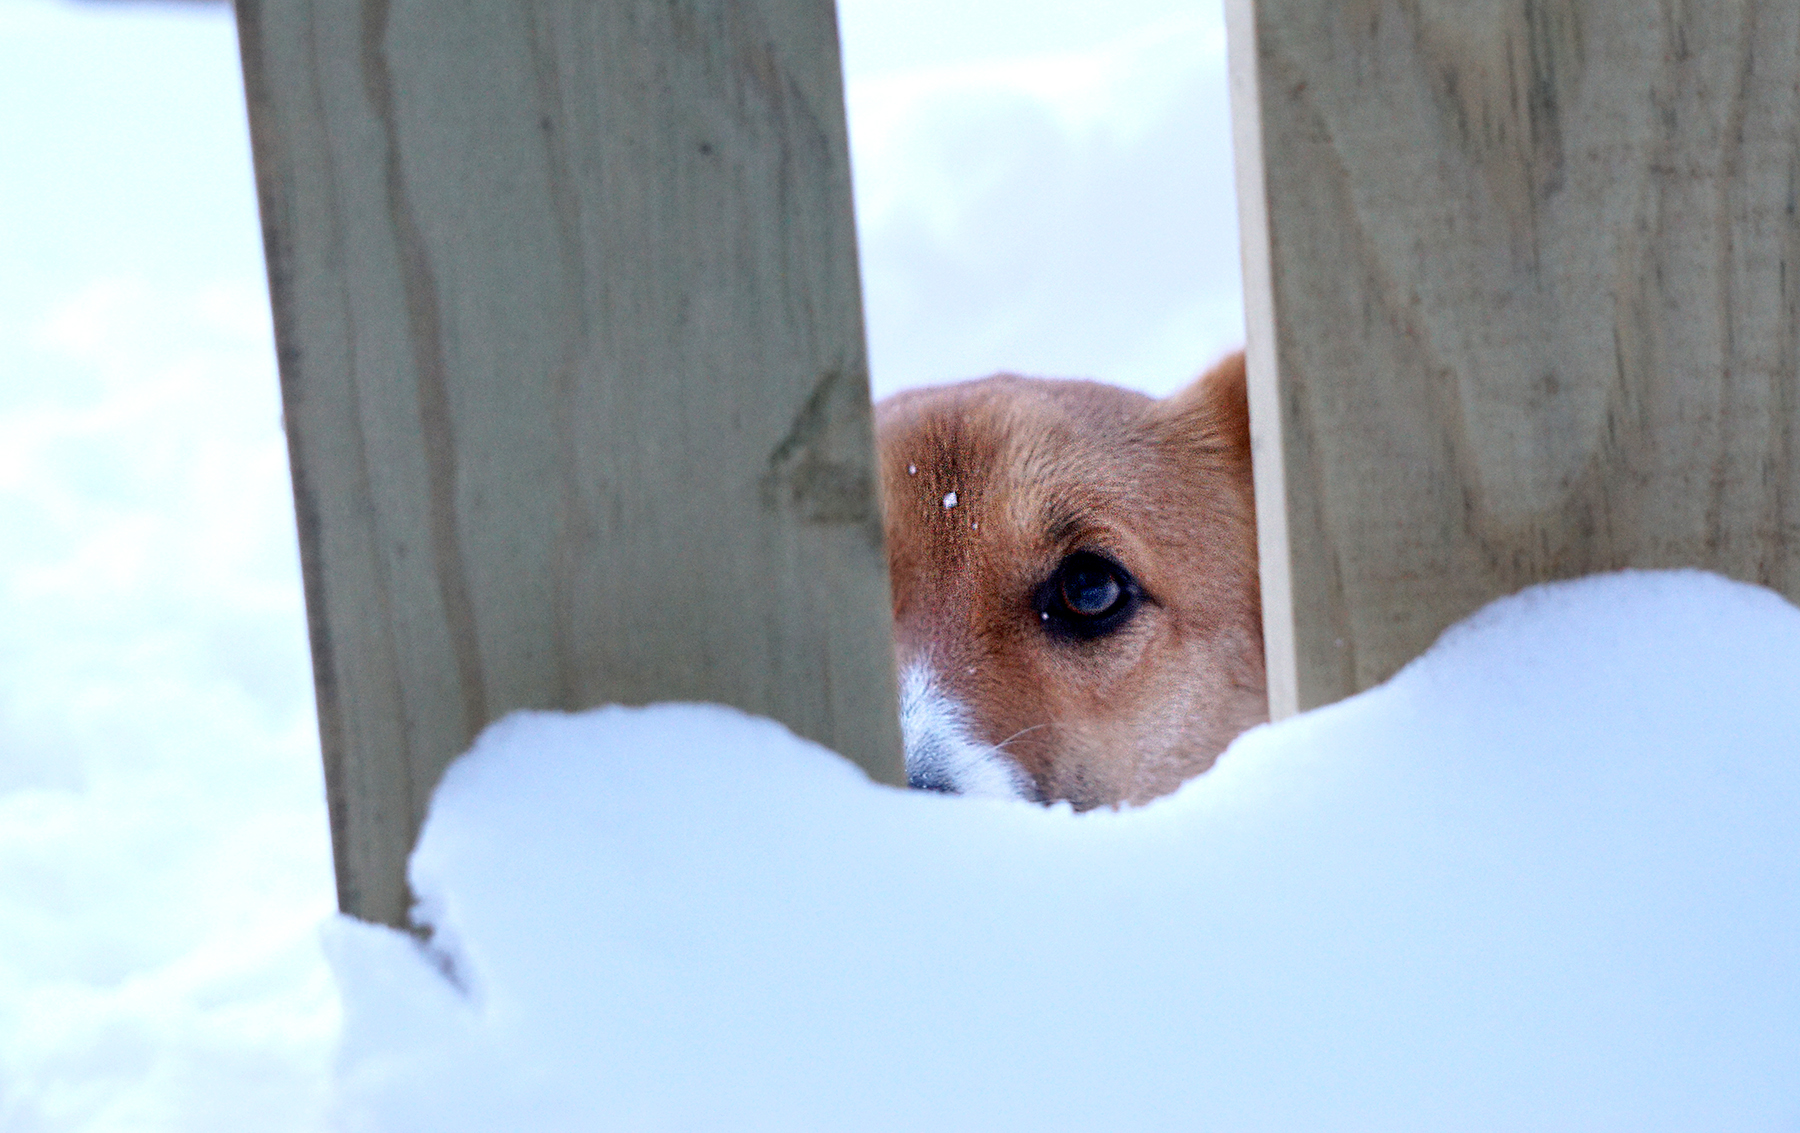 Lolli, the neighbor's corgi, peeking through the fence.